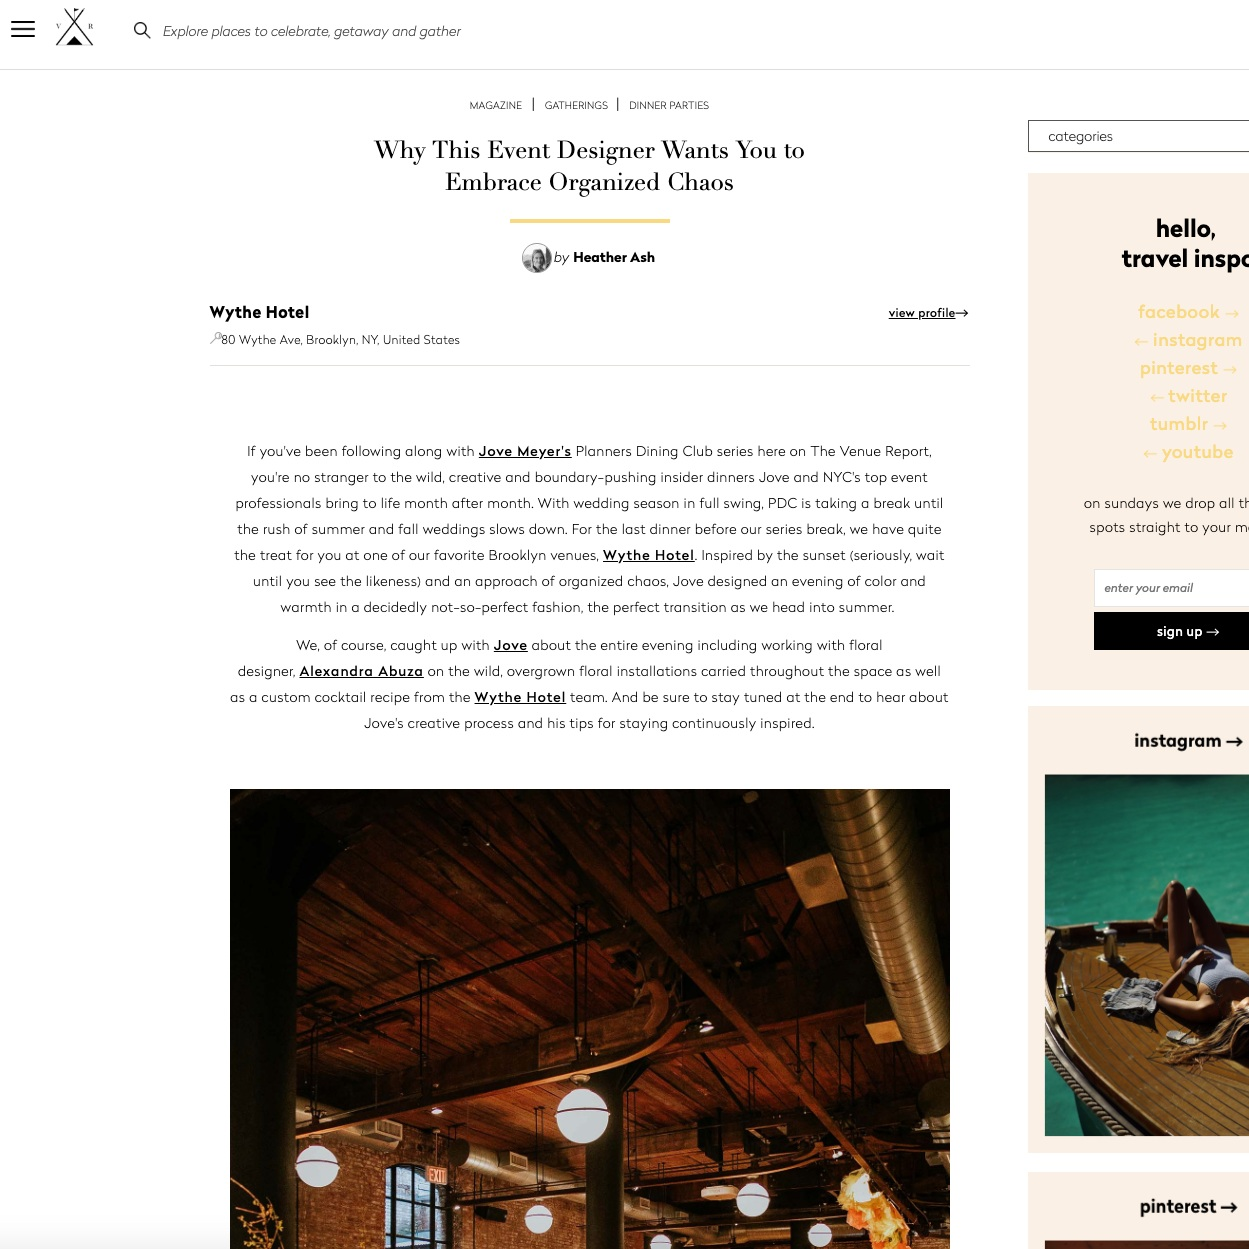 nyc designer jove meyer featured in the venue report for wythe hotel event